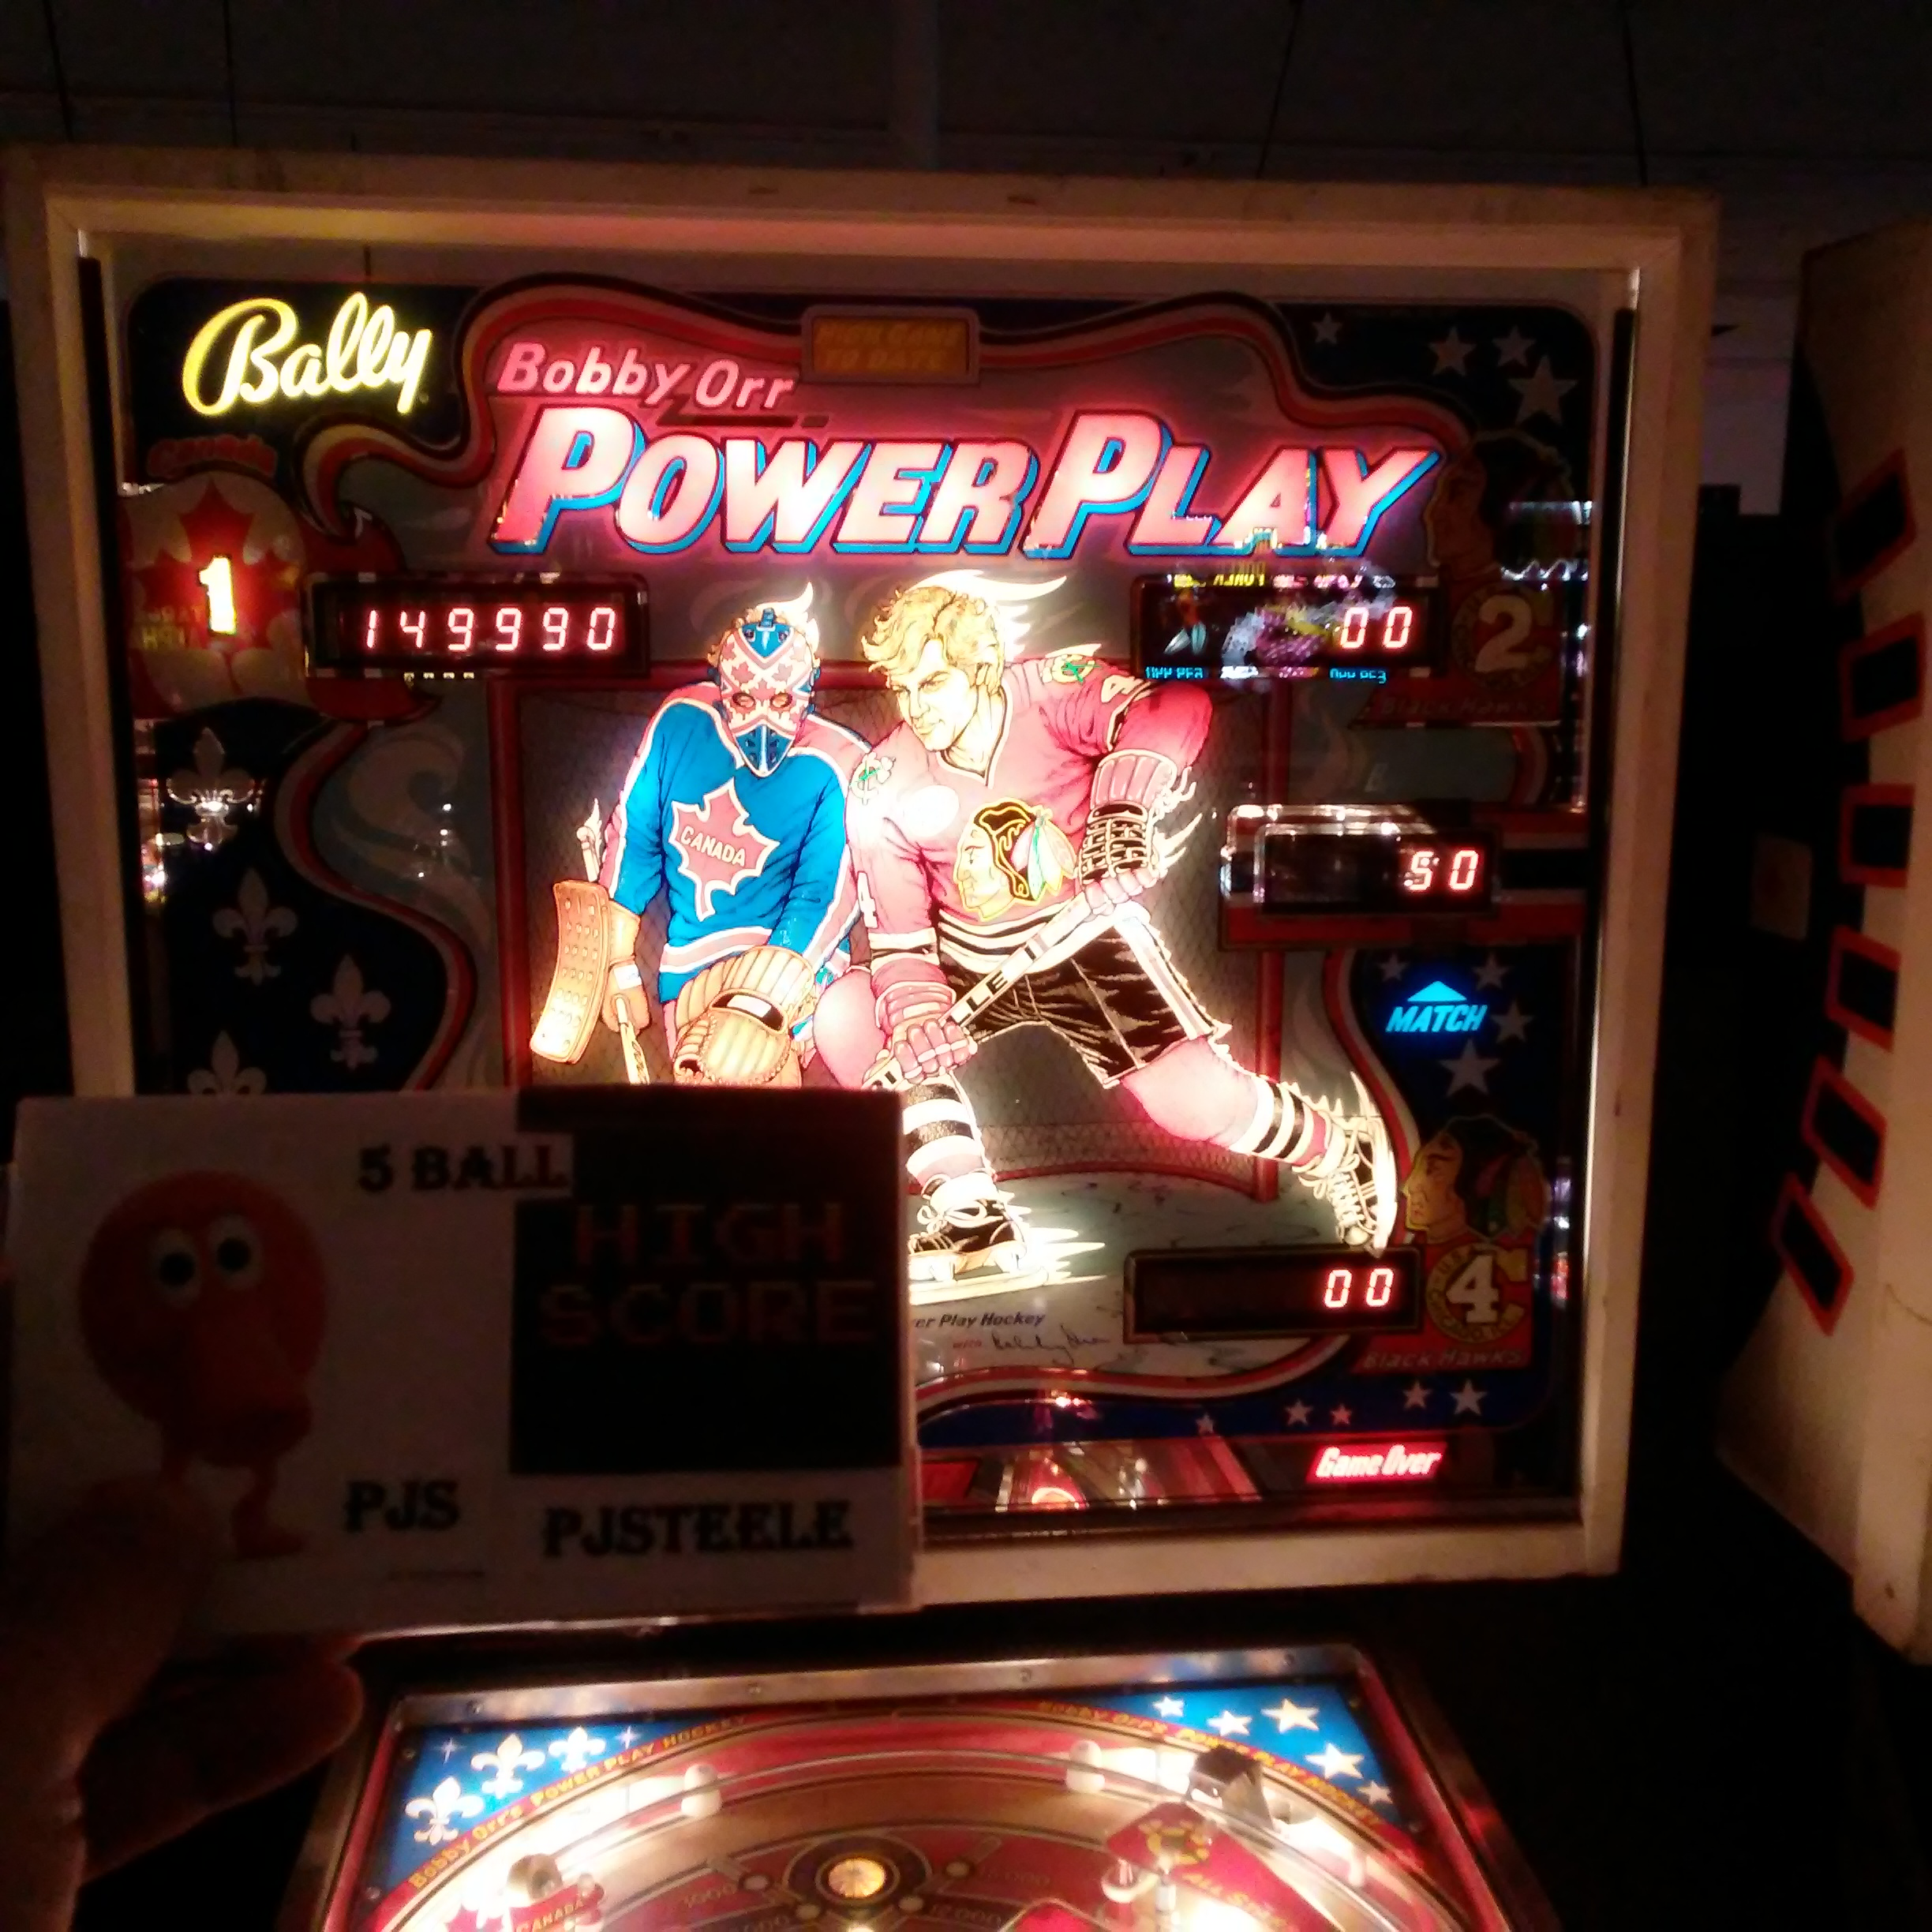 Pjsteele: Power Play [aka Bobby Orr Power Play] (Pinball: 5 Balls) 149,990 points on 2018-03-03 19:01:52